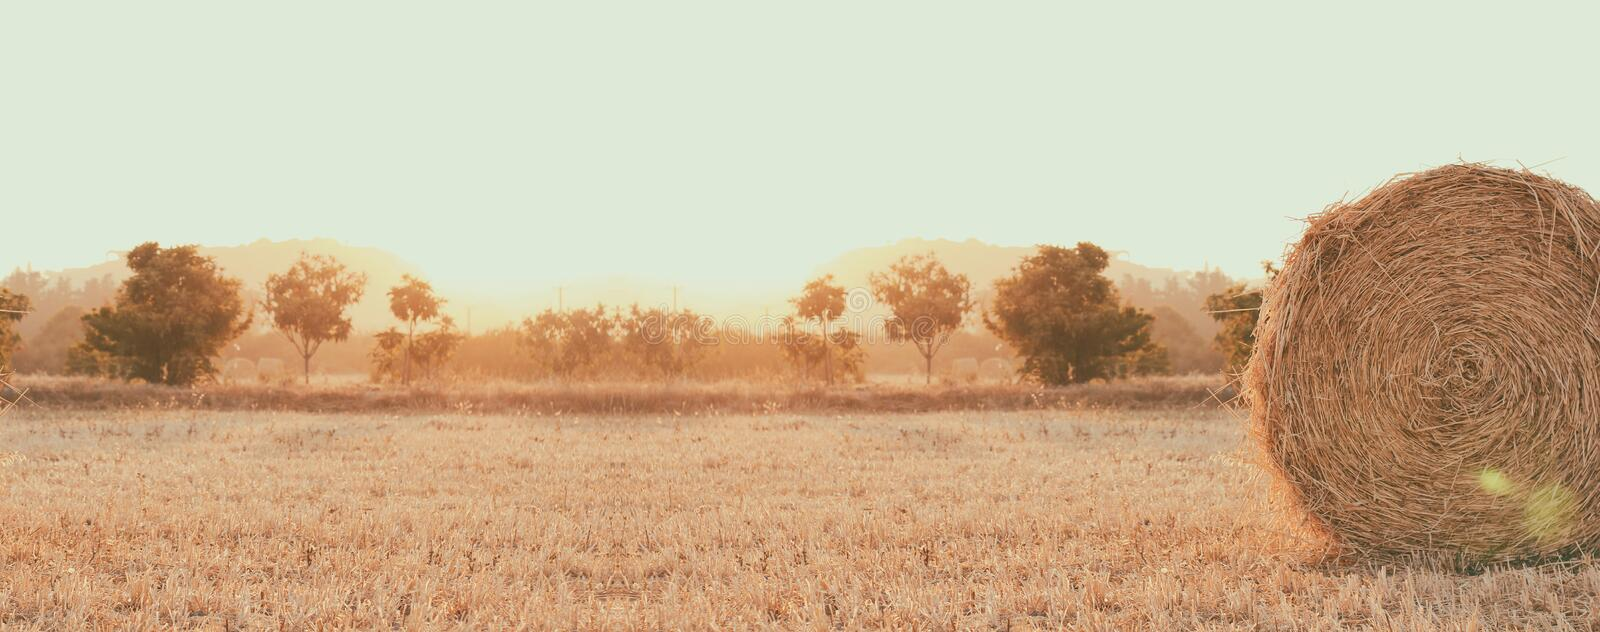 Haystack on the field. Sunset time. Harvest season. Long banner photo. Header format. Your text space royalty free stock image